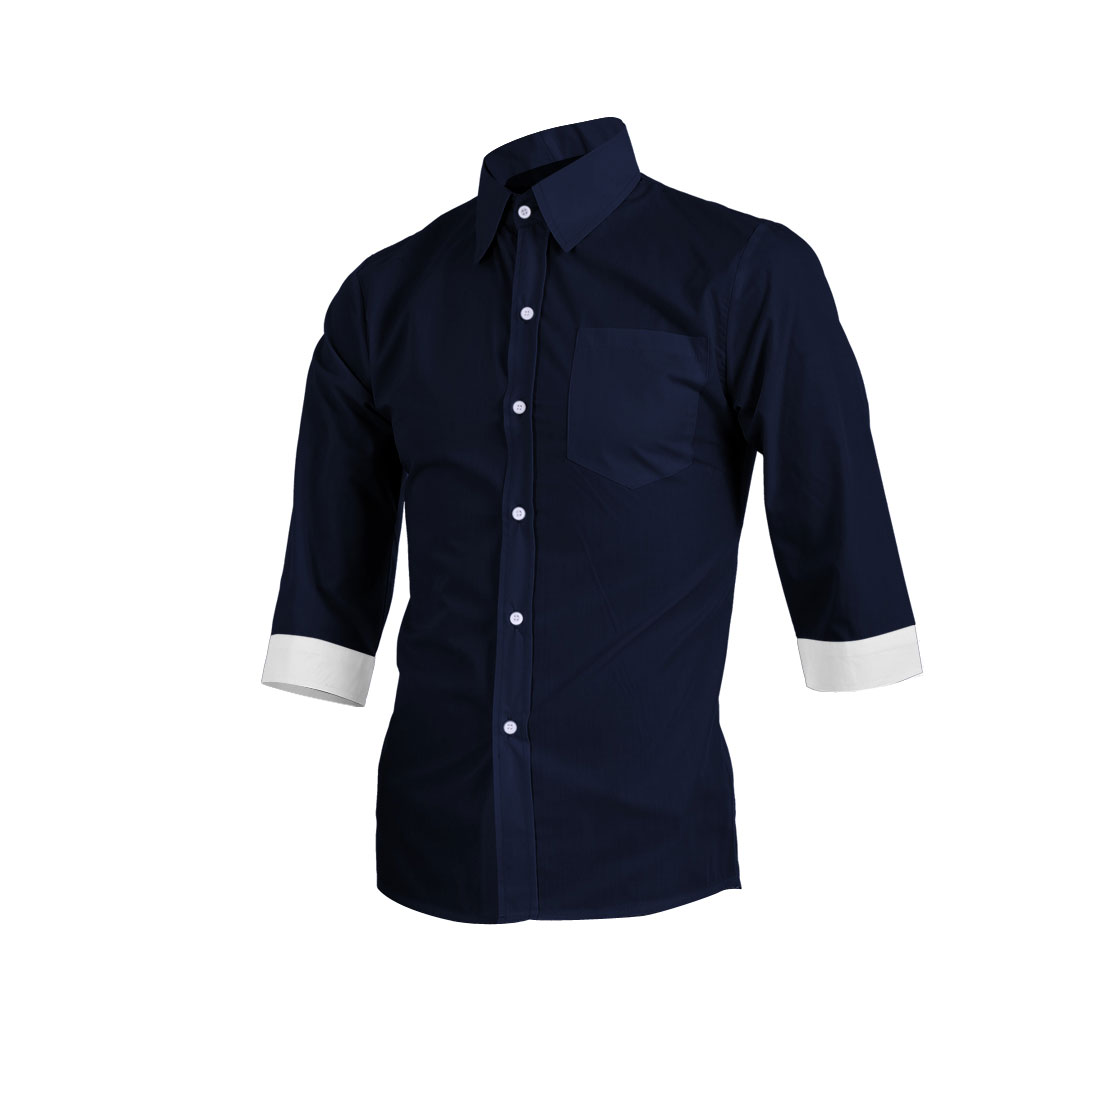 Men Summer Single Chest Pocket Front Button Up Shirt Navy Blue M